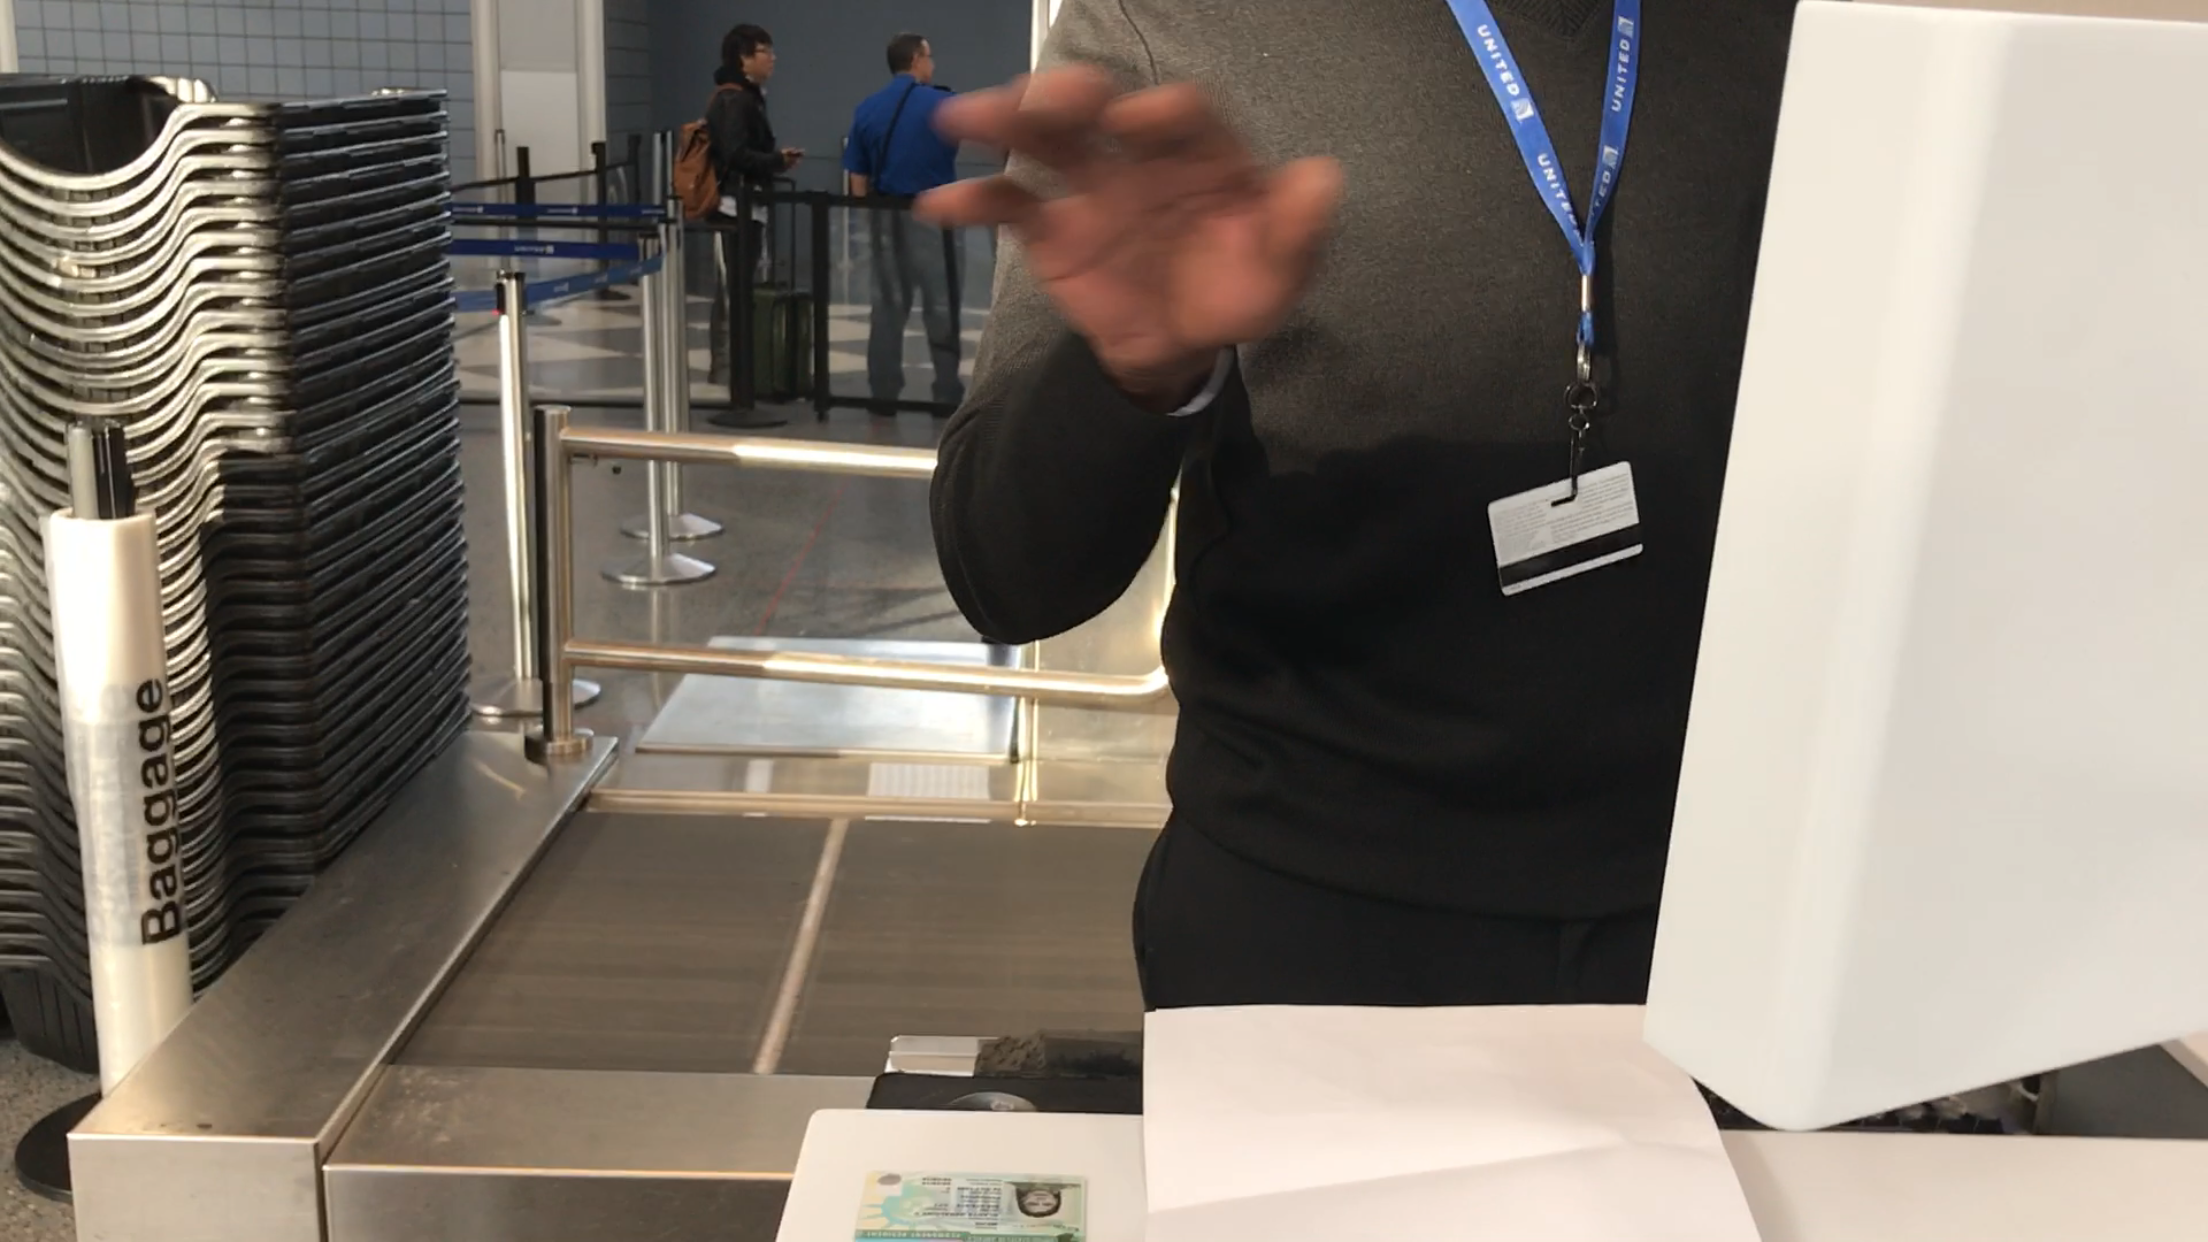 Delta agent purposely flipped his I.d to conceal his identity